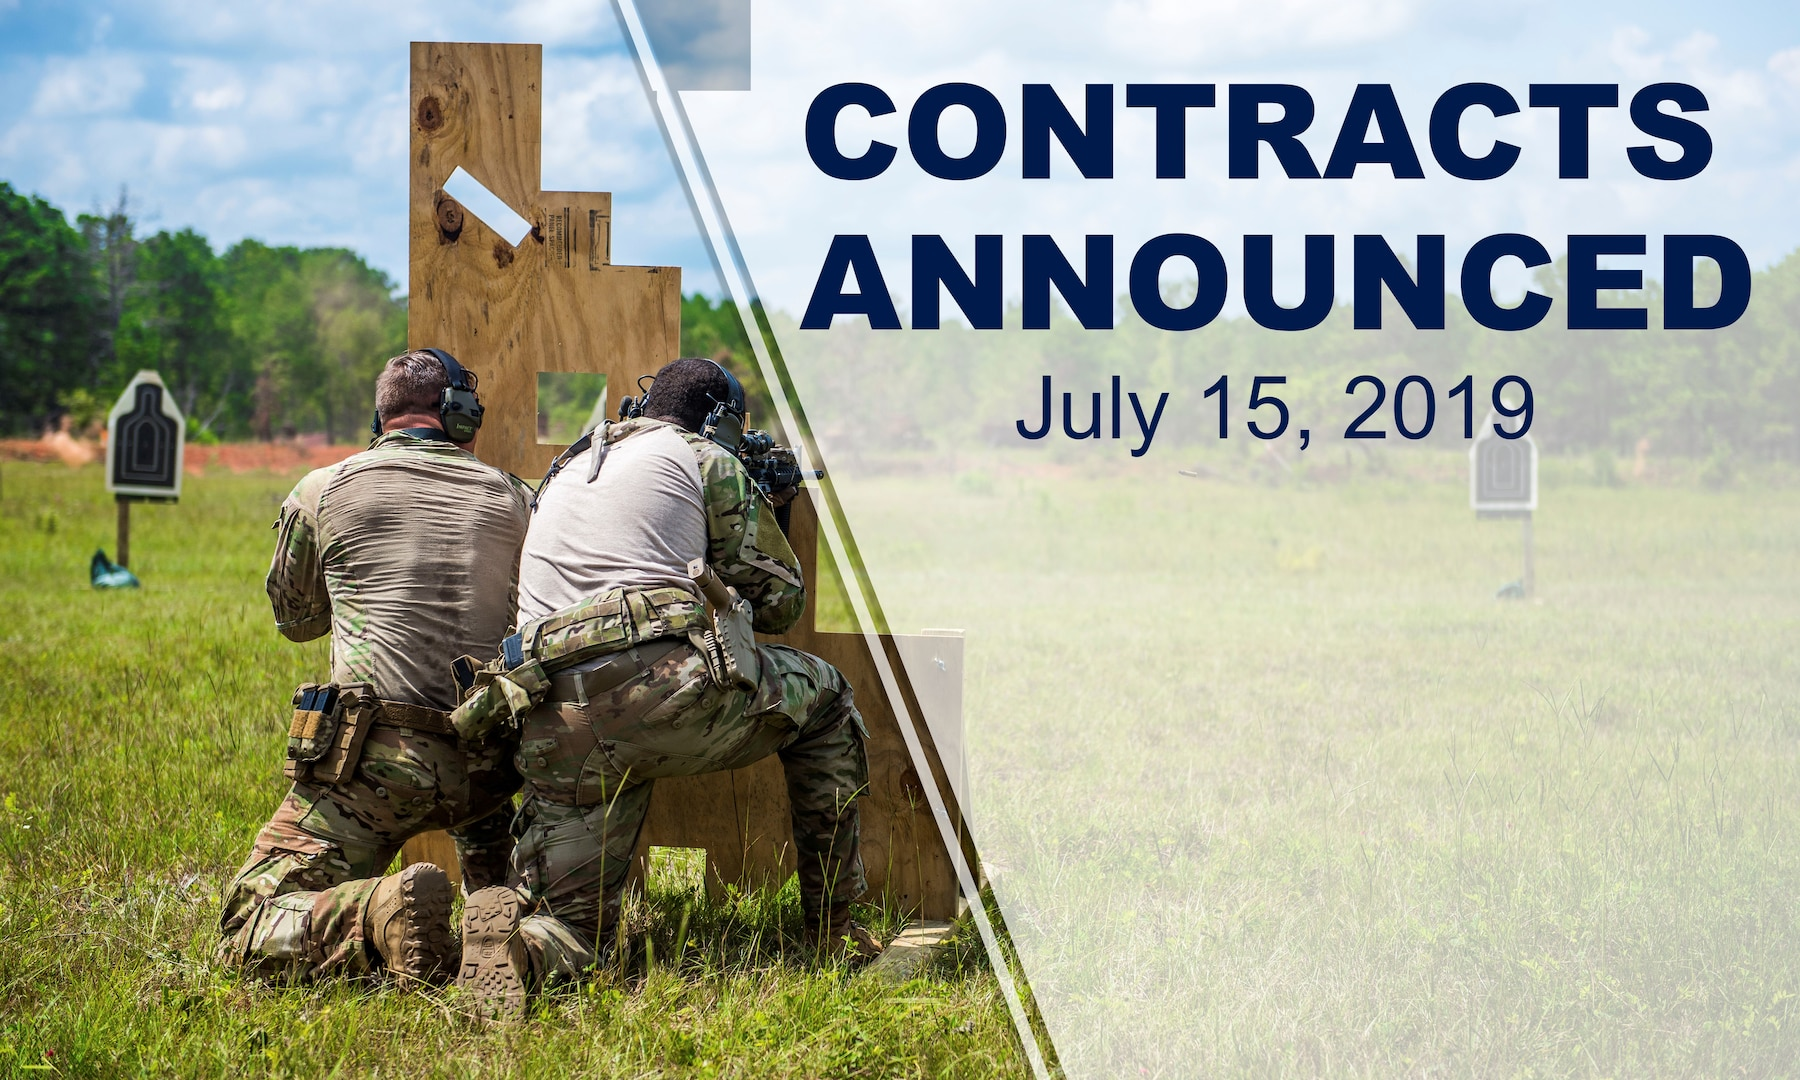 """Two soldiers behind cover at a weapons range. Text says: """"Contracts Announced July 15, 2019."""""""